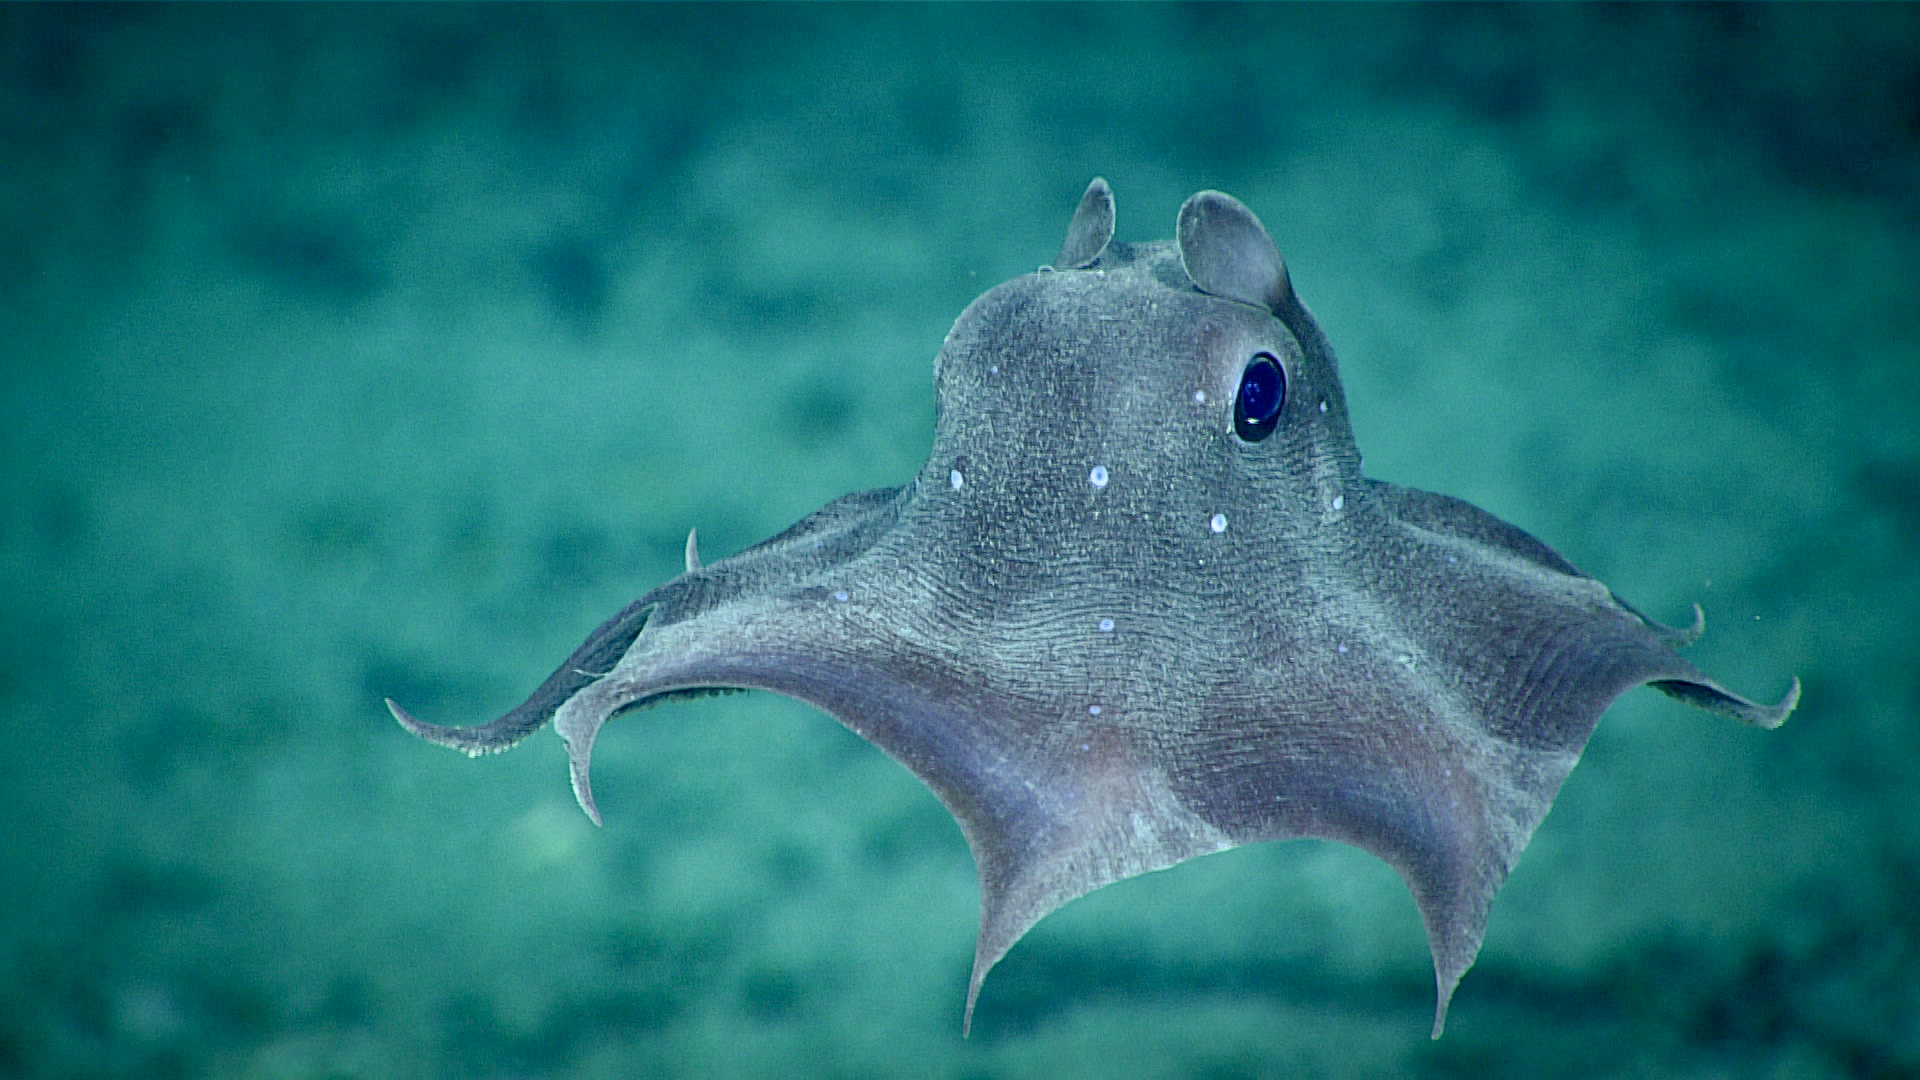 File:Dumbo Octopus (49203817176).jpg - Wikimedia Commons